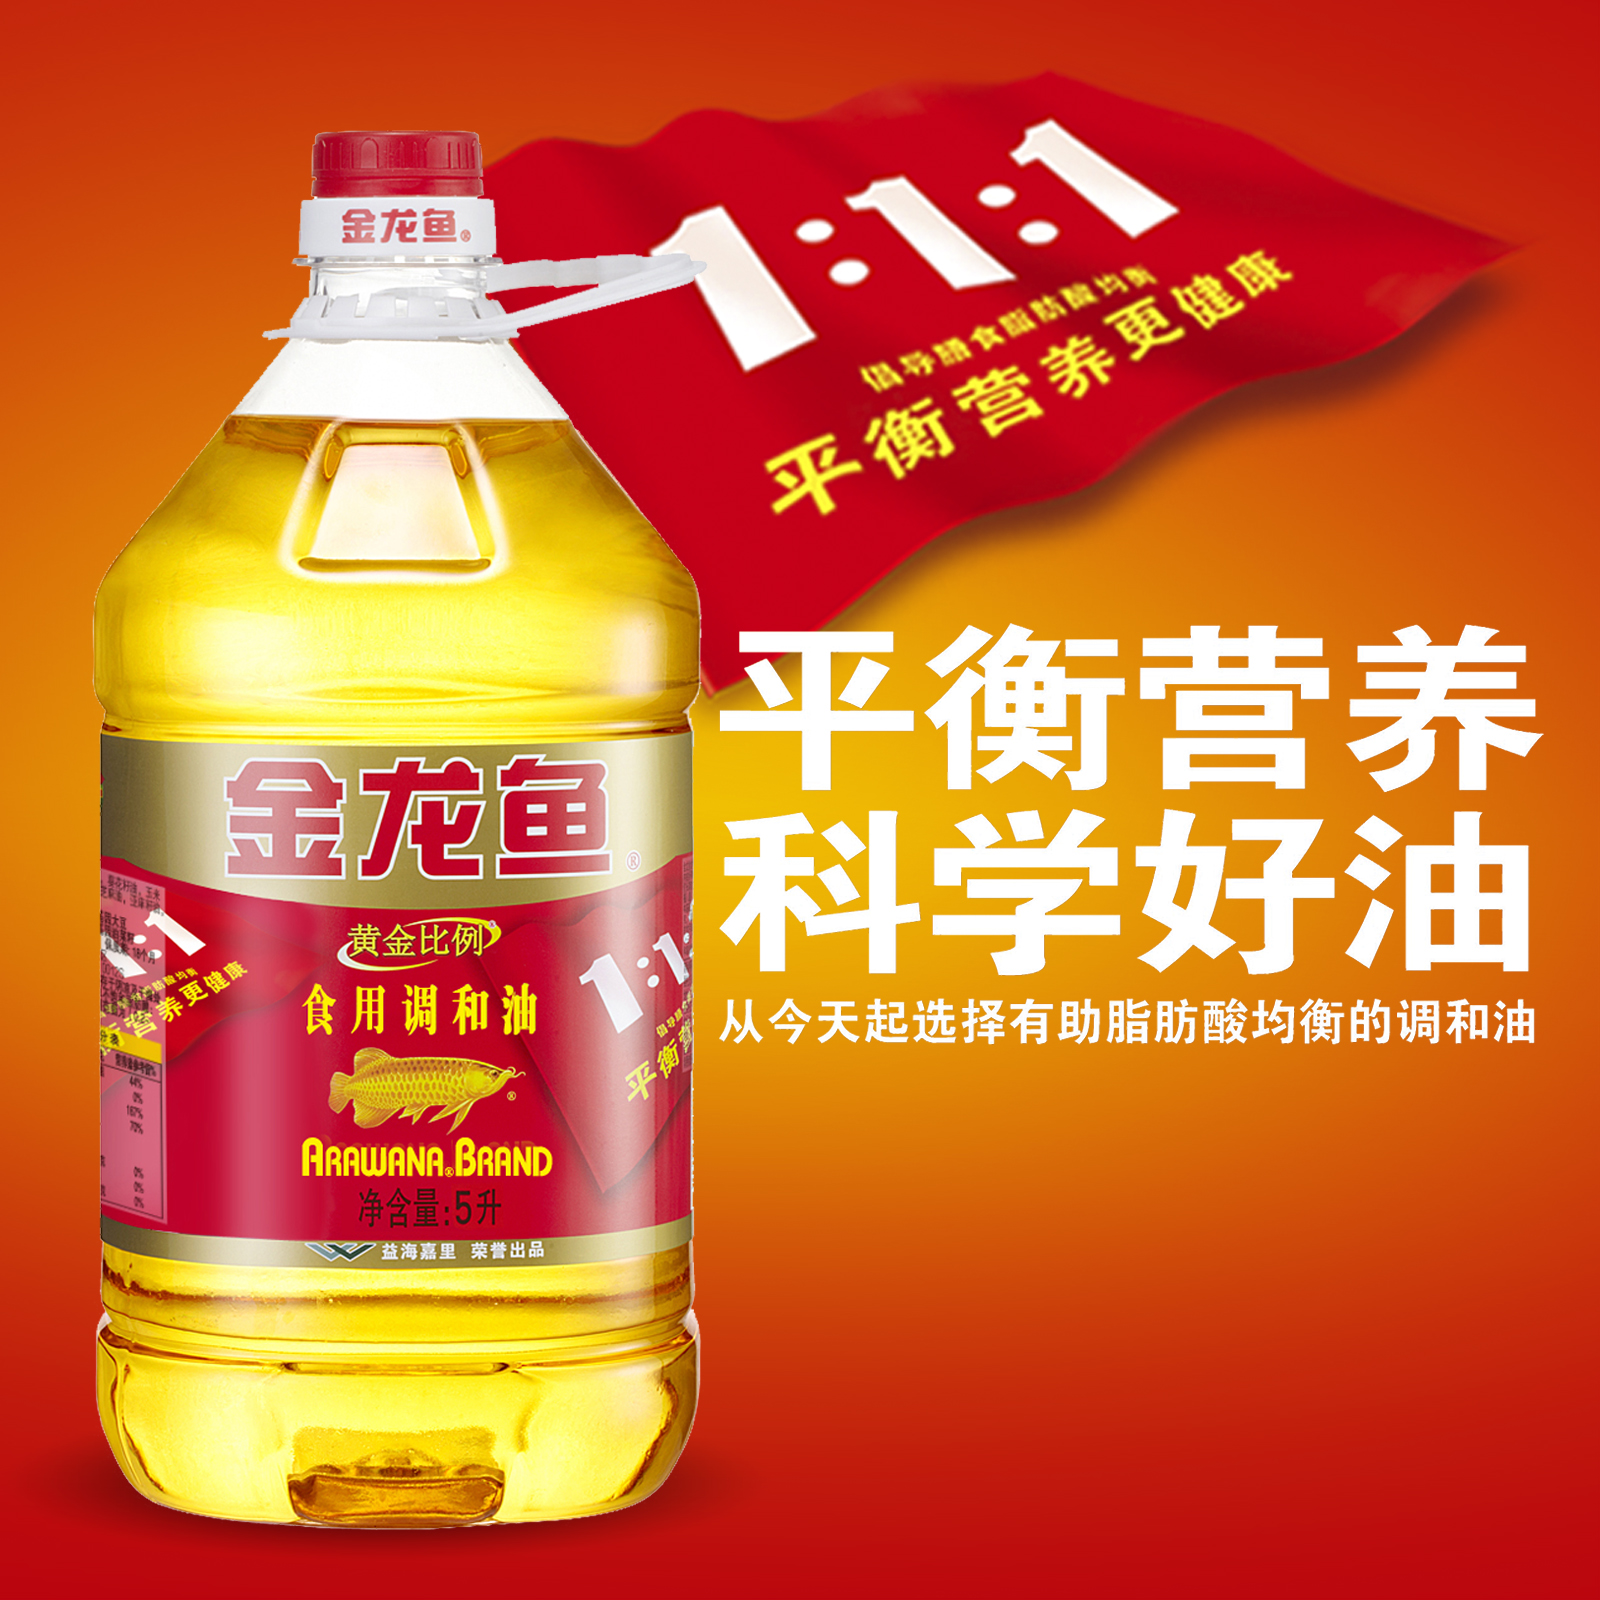 The golden ratio arowana edible cooking oil cooking oil 5l/barrel grain and oil healthy cooking oil official authorized authentic